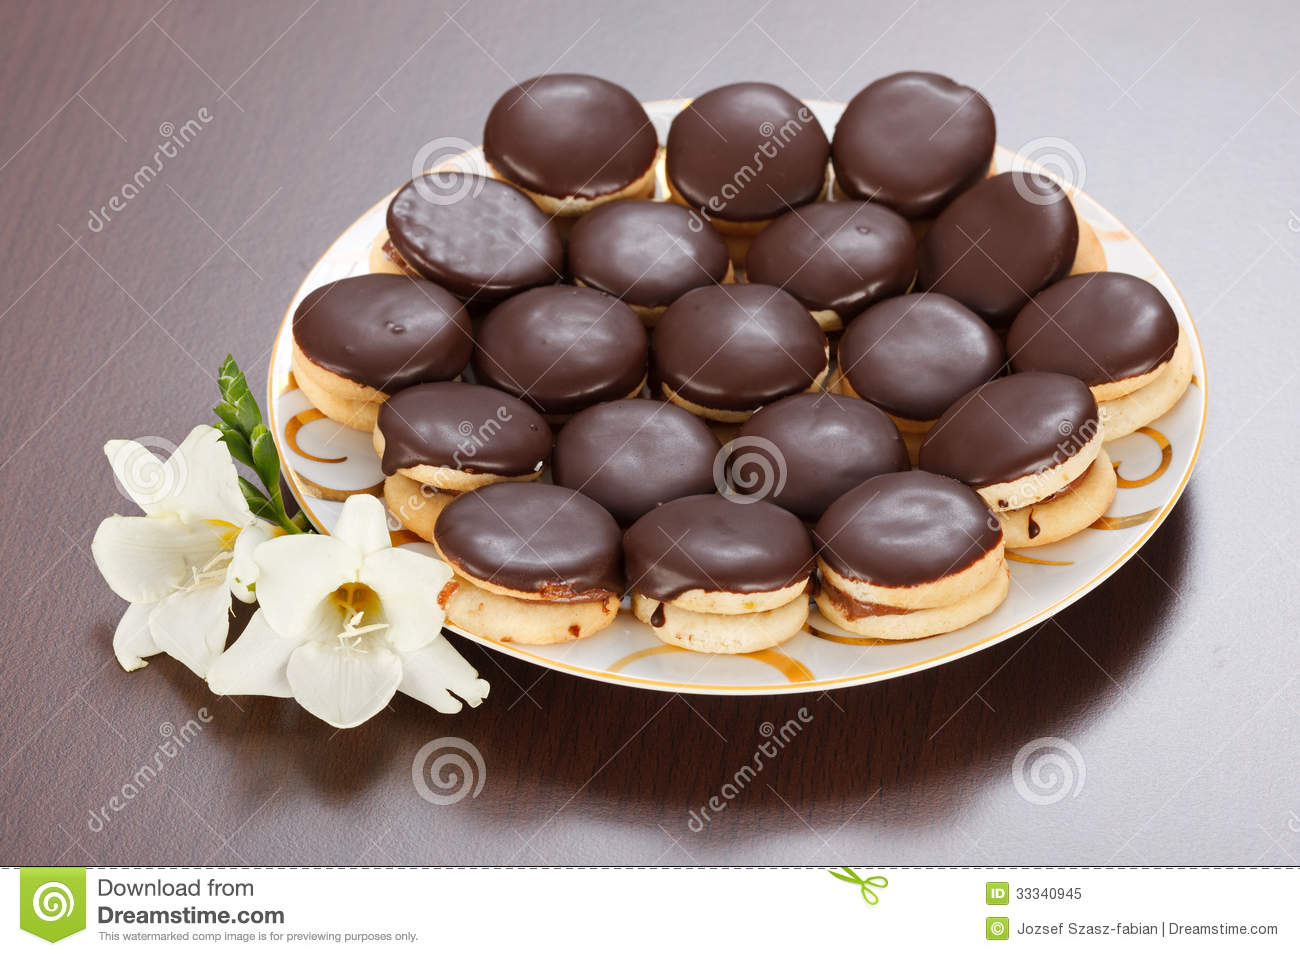 Ischler cookies coated with dark chocolate glaze on plate.